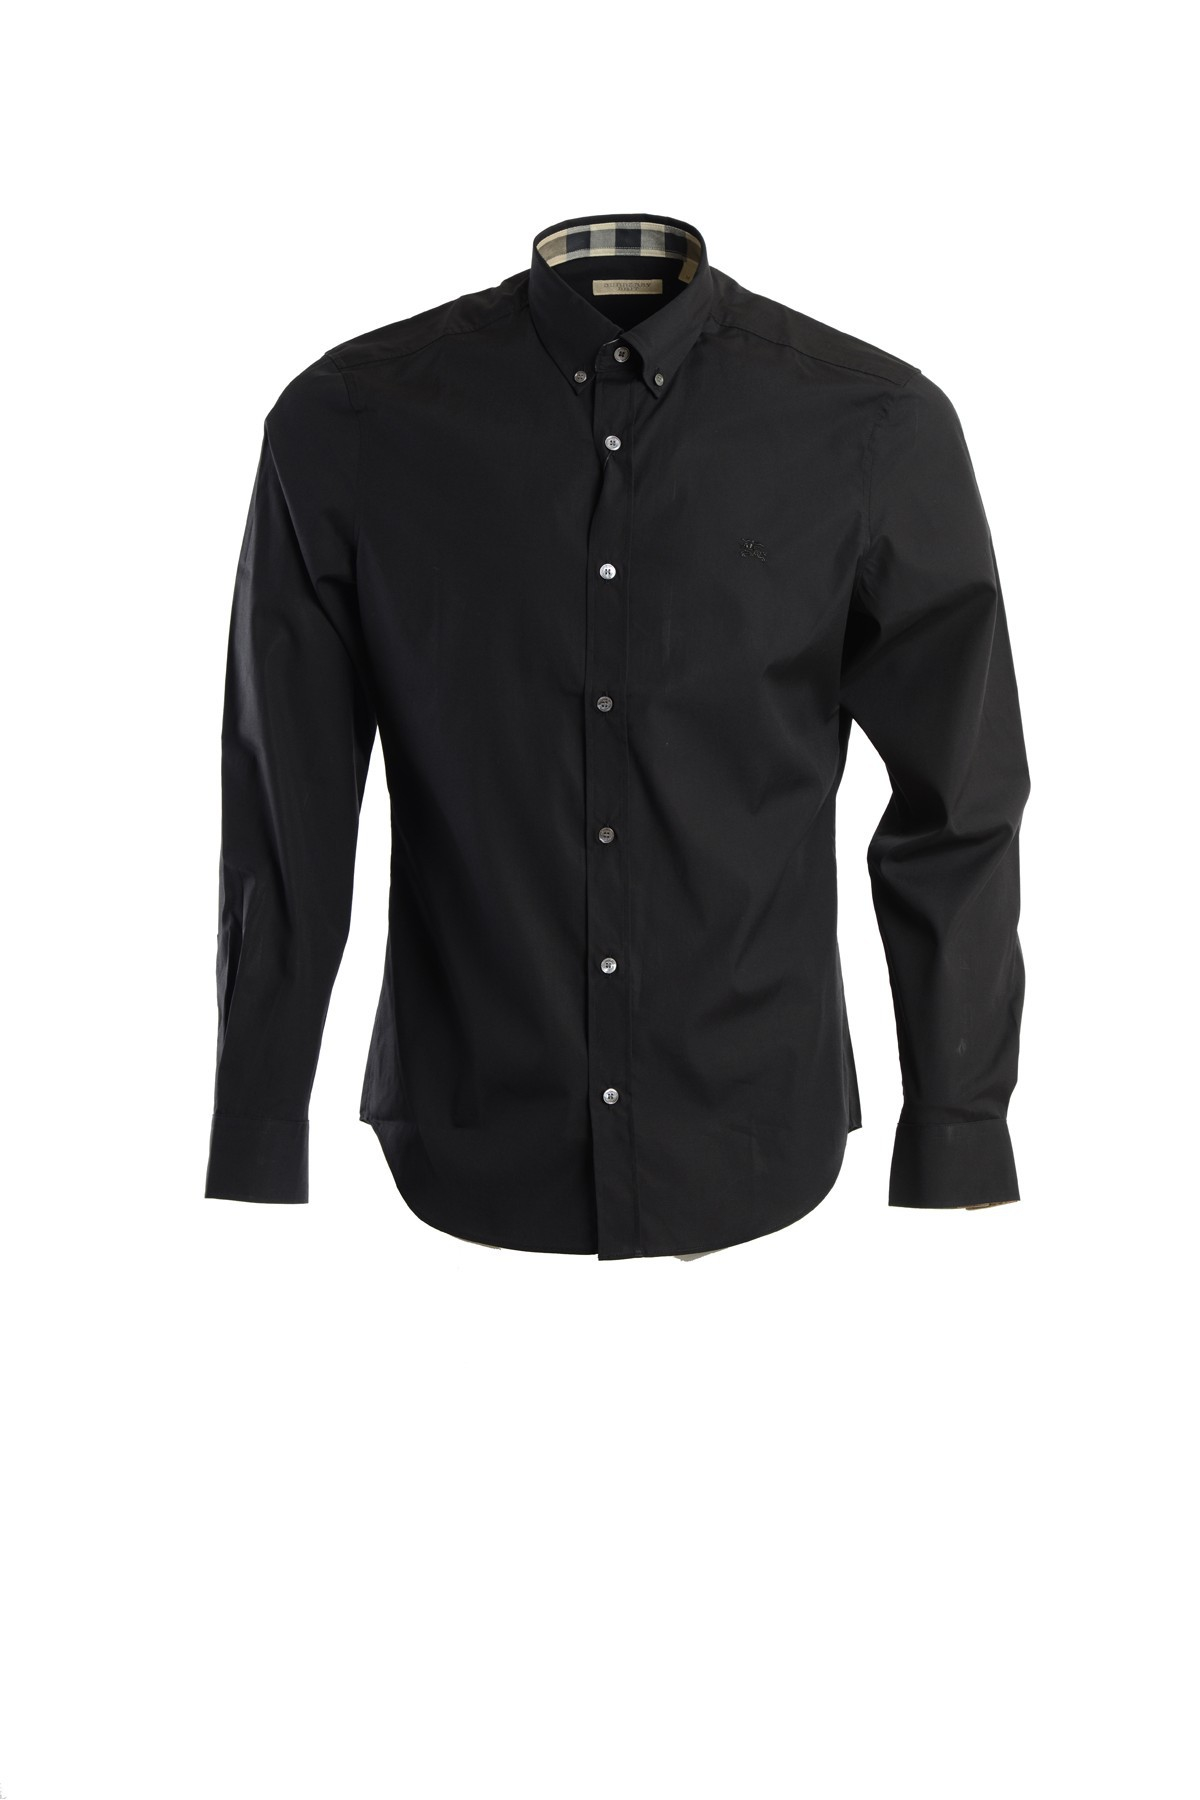 Burberry stretch cotton button down shirt in black for men for Womens stretch button down shirt